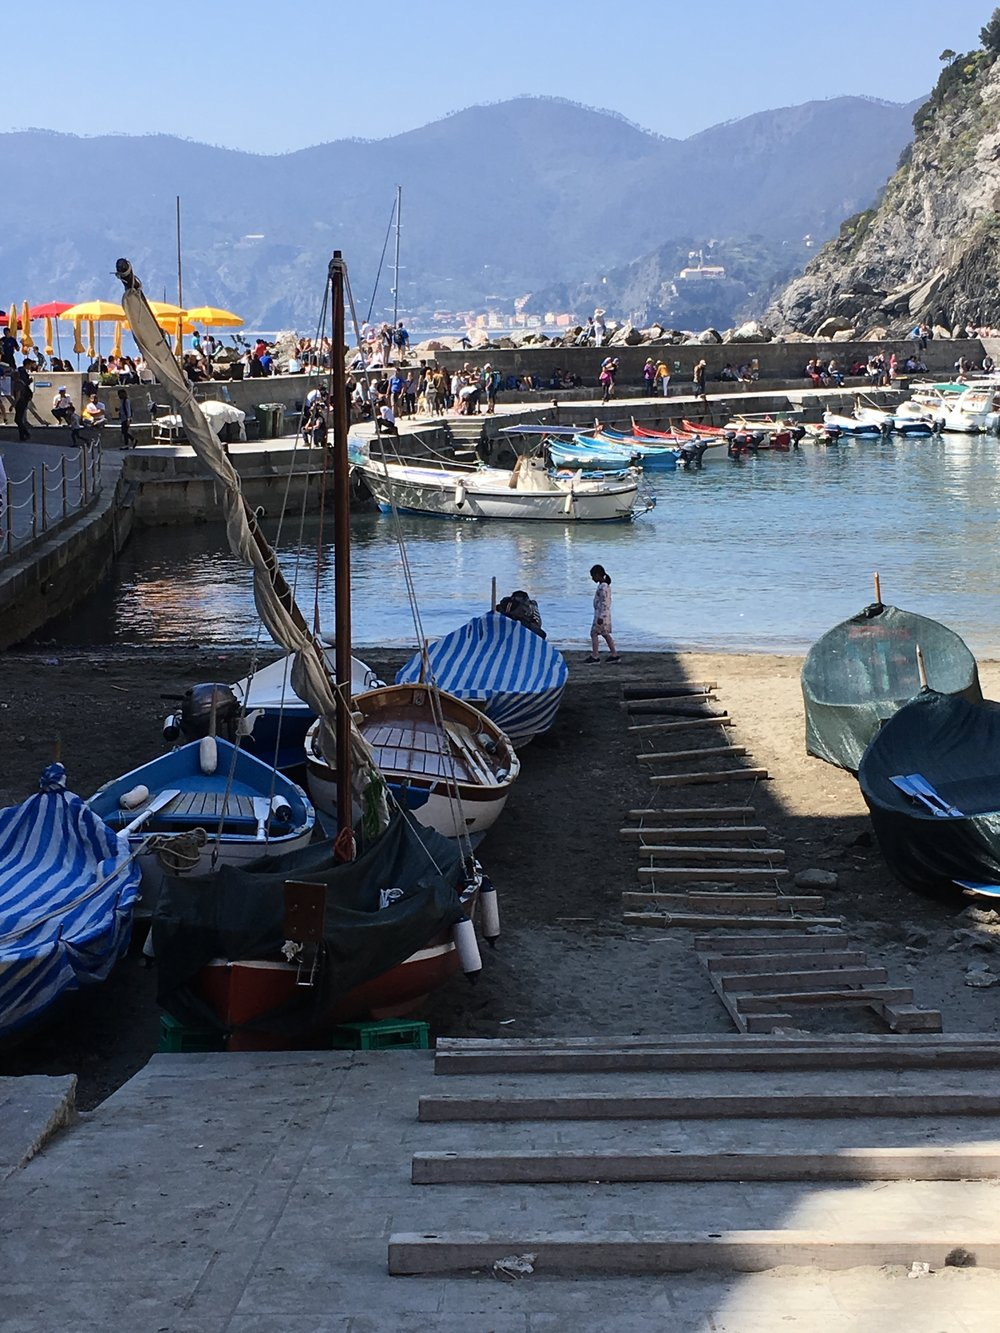 Vernazza's harbor.